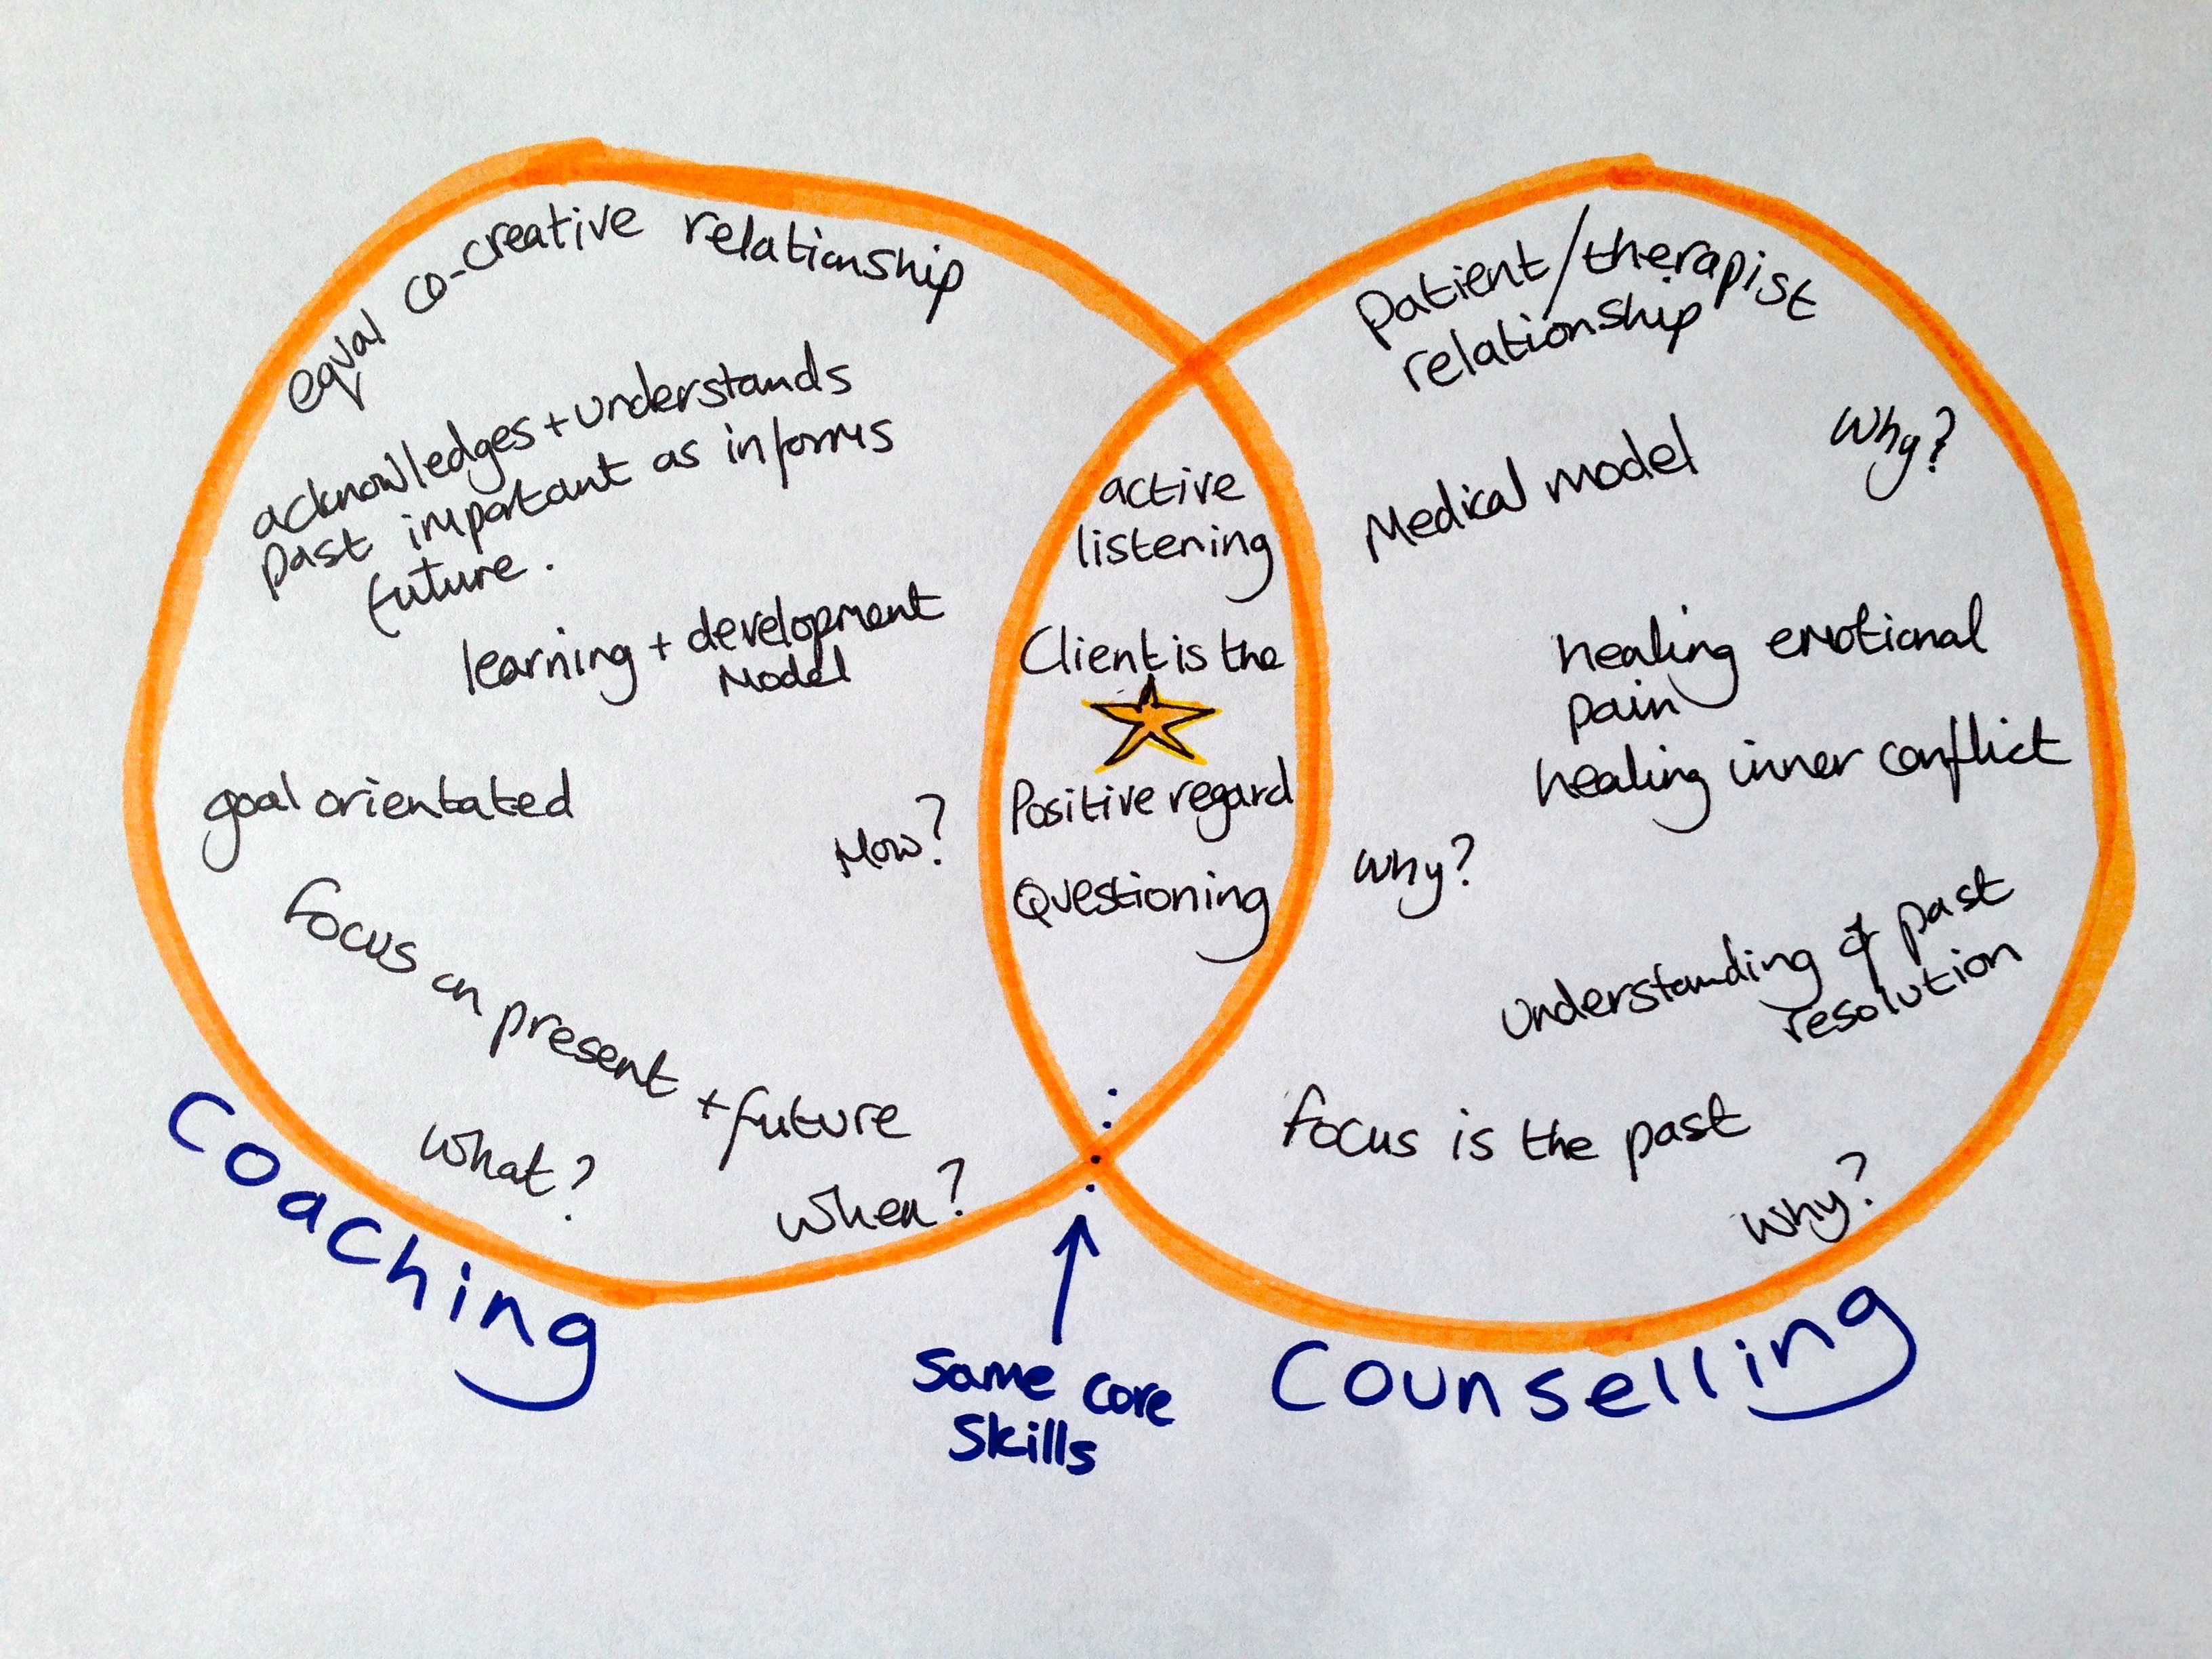 the differences between counseling skills and What is the difference between counselling and psychotherapy - counseling focuses on day to day issues psychotherapy focuses more on chronic problems.